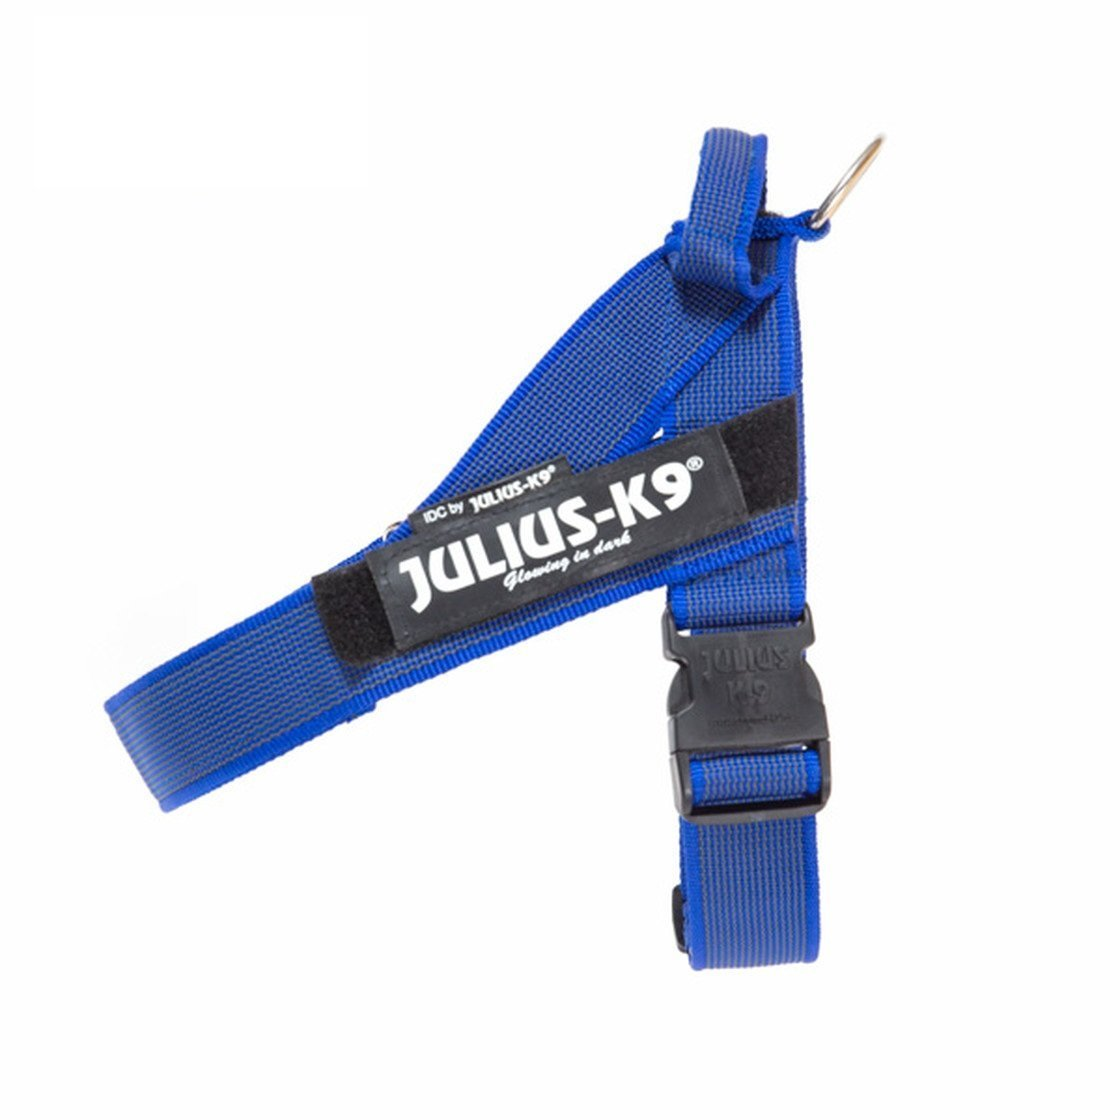 Julius K9 IDC Gurtbandgeschirr Color & Gray, Gr. 2 - Brustumfang: 67-94 cm, blau